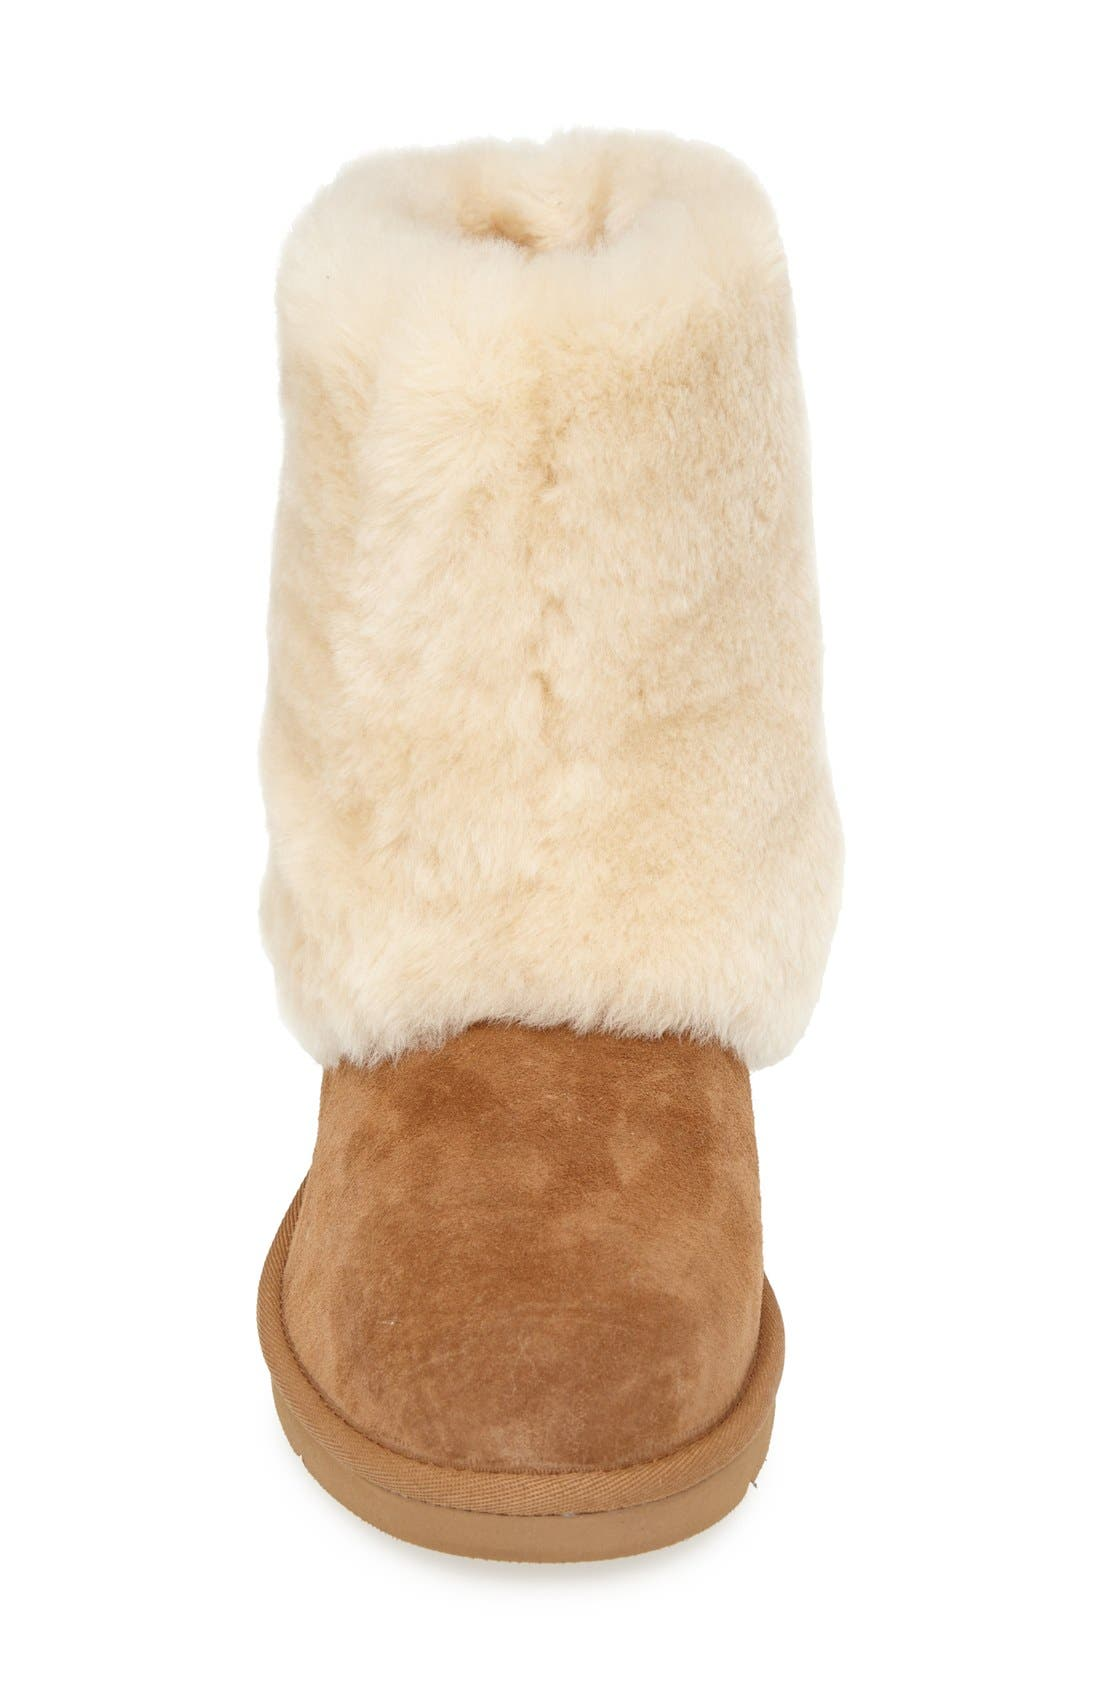 Alternate Image 3  - UGG® 'Patten' Water Resistant Silkee™ Suede Shearling Cuff Boot (Women)